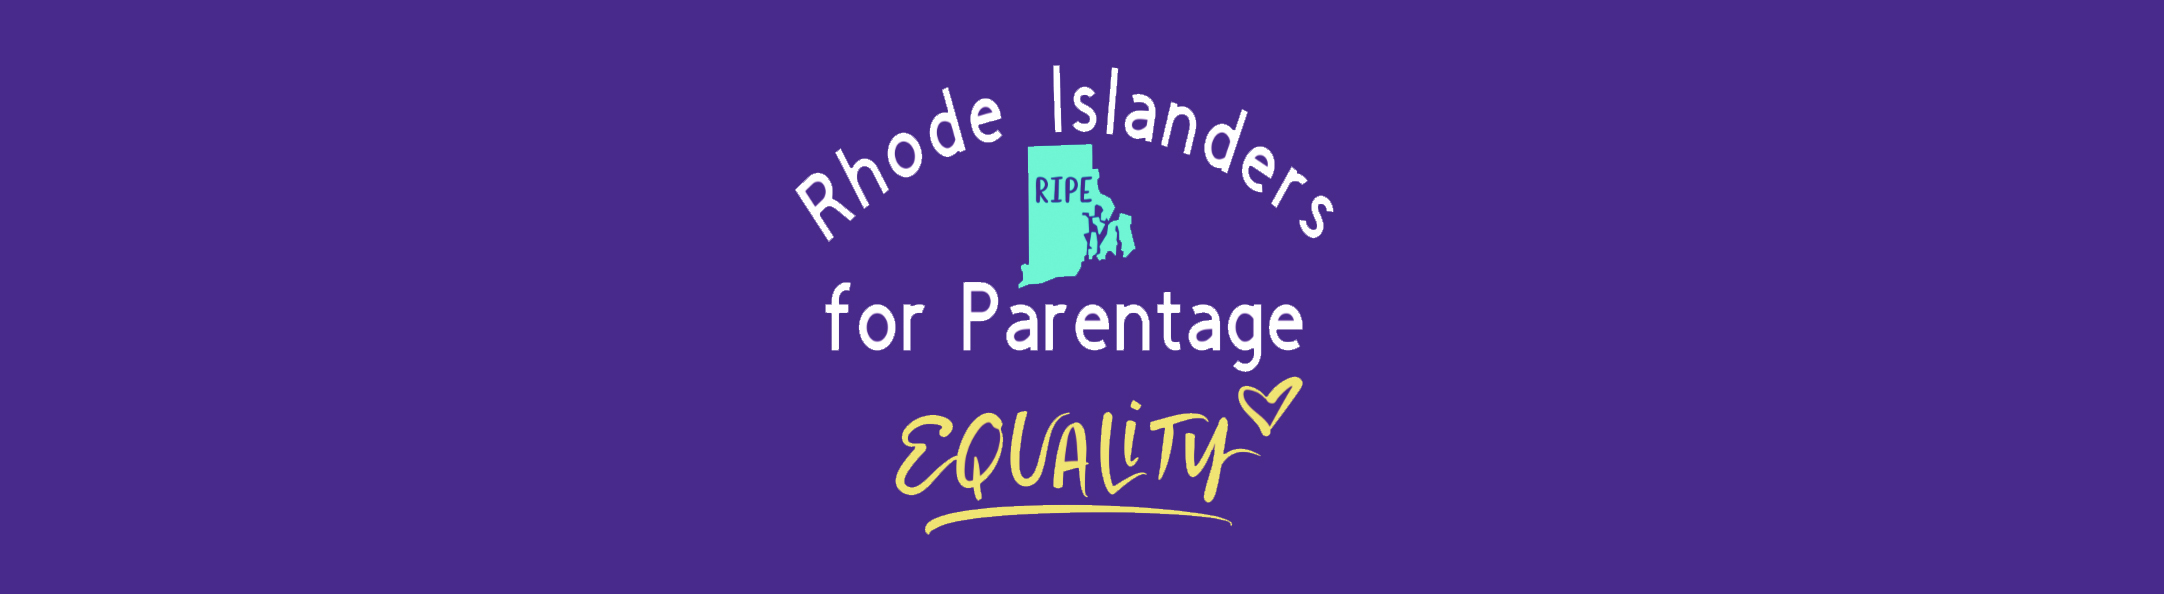 Rhode Islanders for Parentage Equality